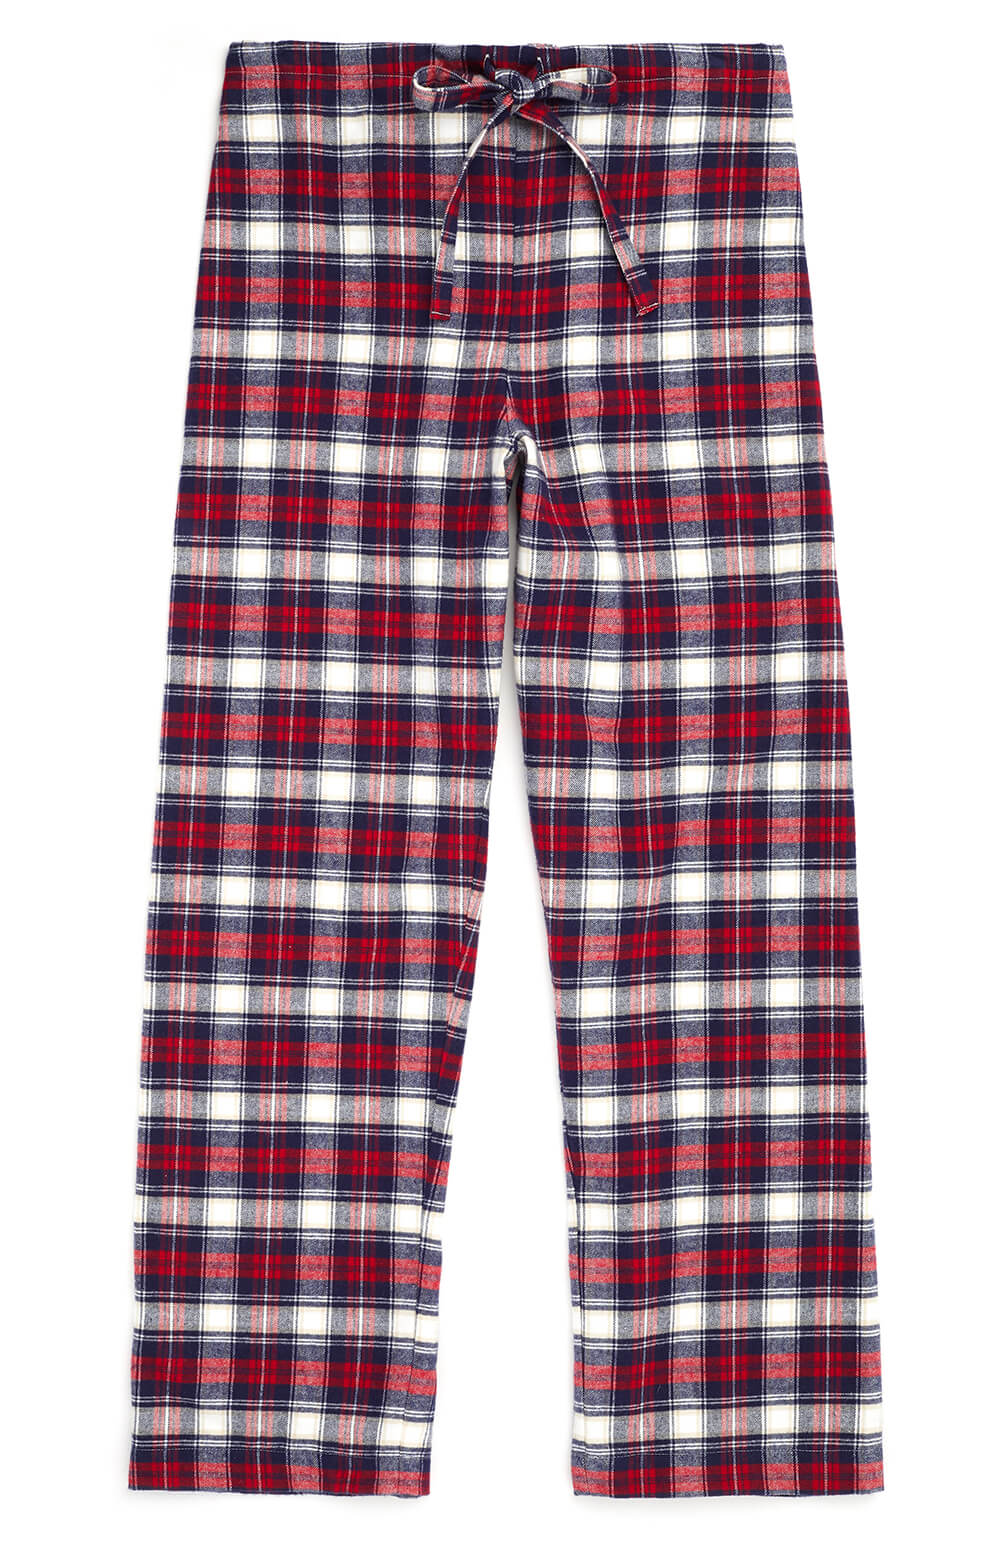 Brushed Tartan Pyjama Trousers (tltf) - Stewart | Bonsoir of London